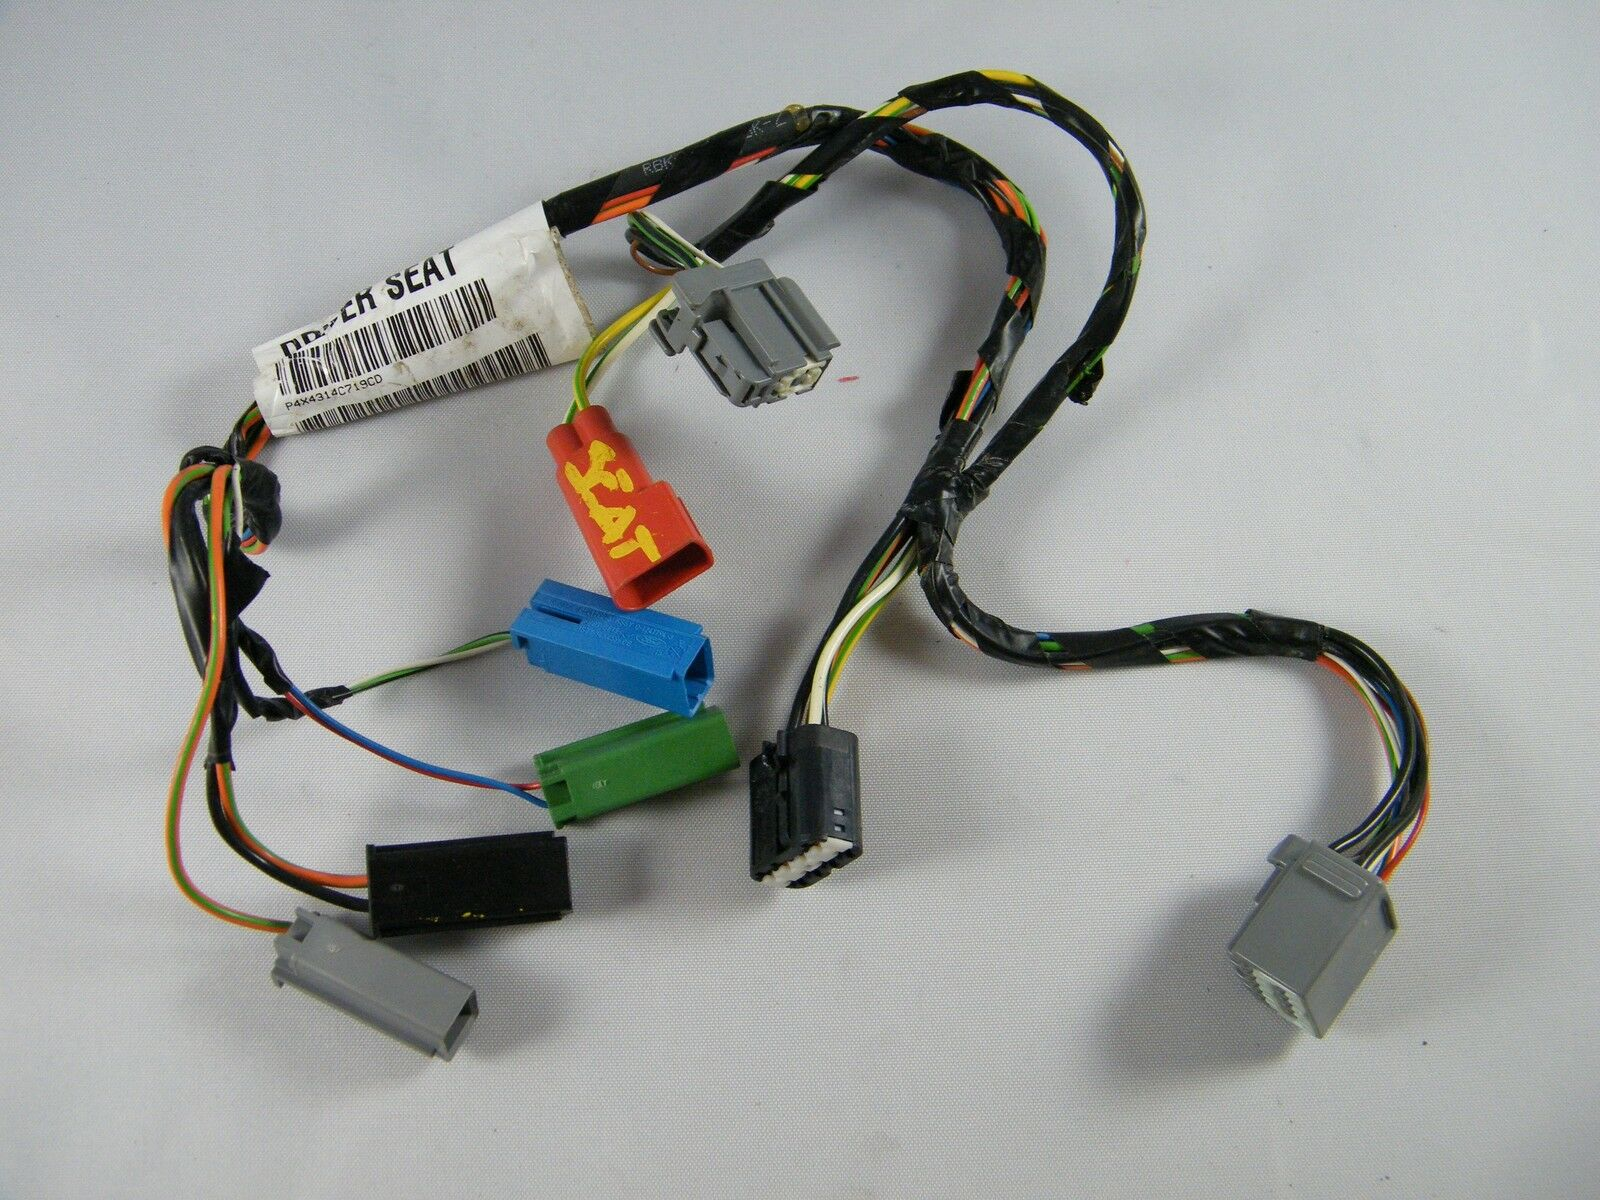 s l1600 2004 jaguar x type oem passenger side front power seat wiring 2004 Jaguar X-Type Interior at readyjetset.co